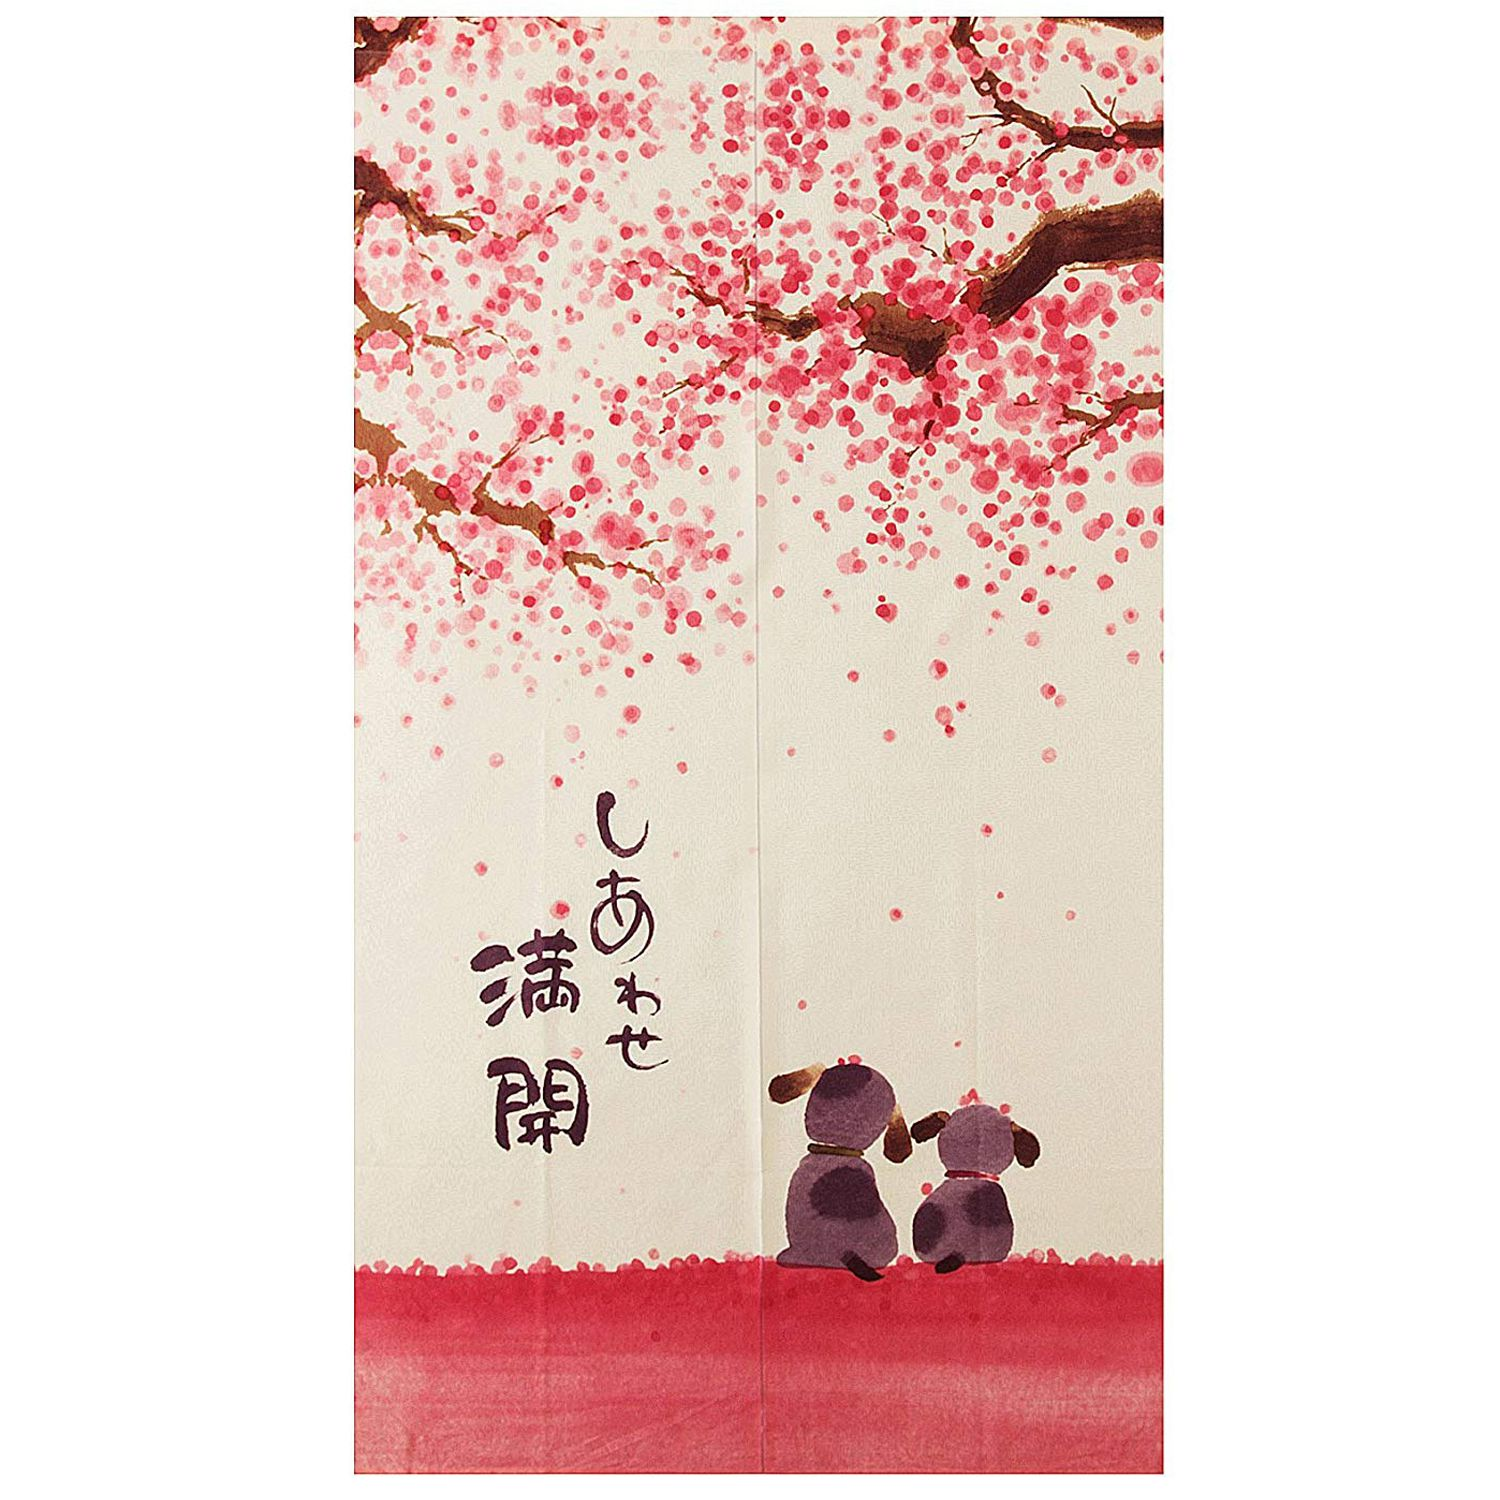 TOP Japanese Style Doorway Curtain 85X150Cm Happy Dogs Cherry Blossom